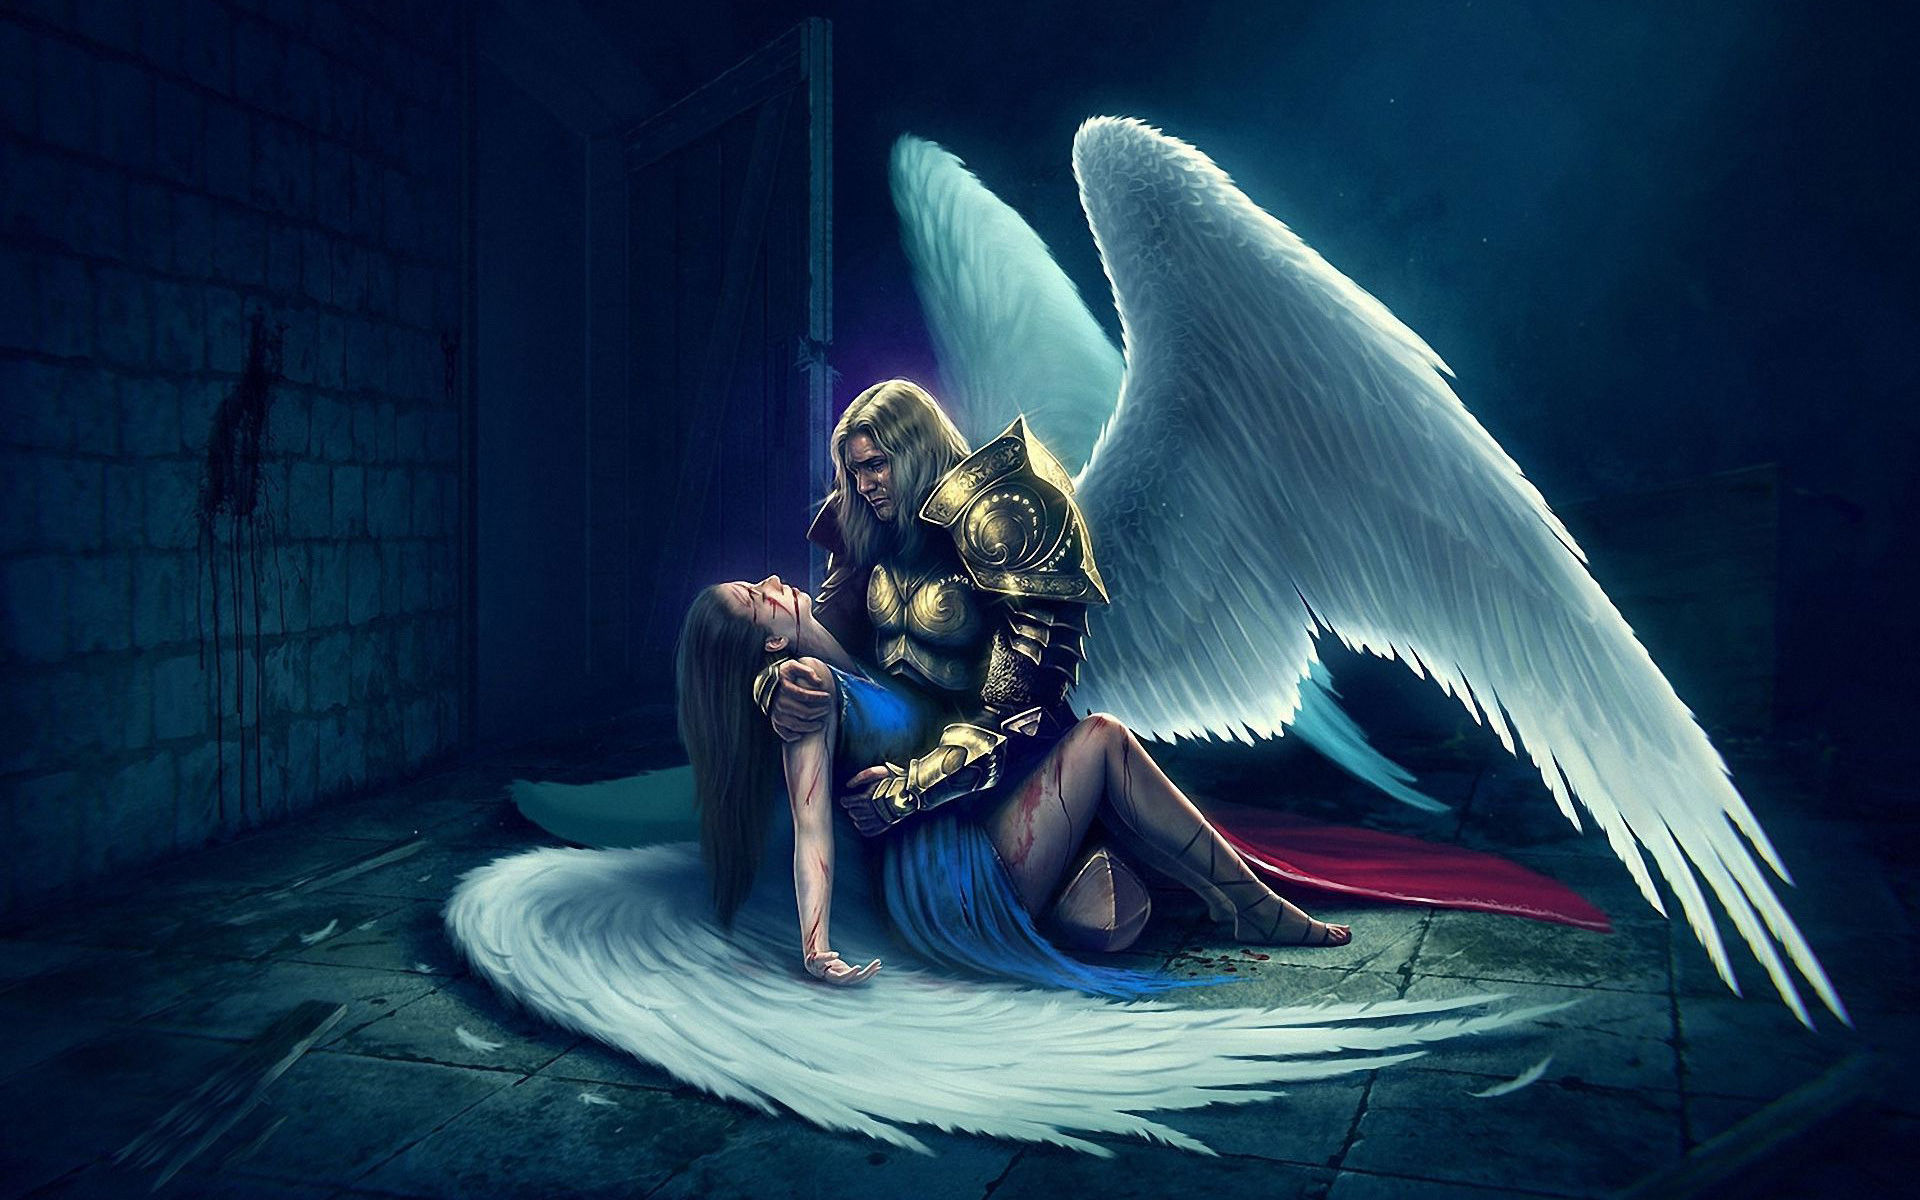 view image. Found on: angels-screensavers-and-wallpaper/